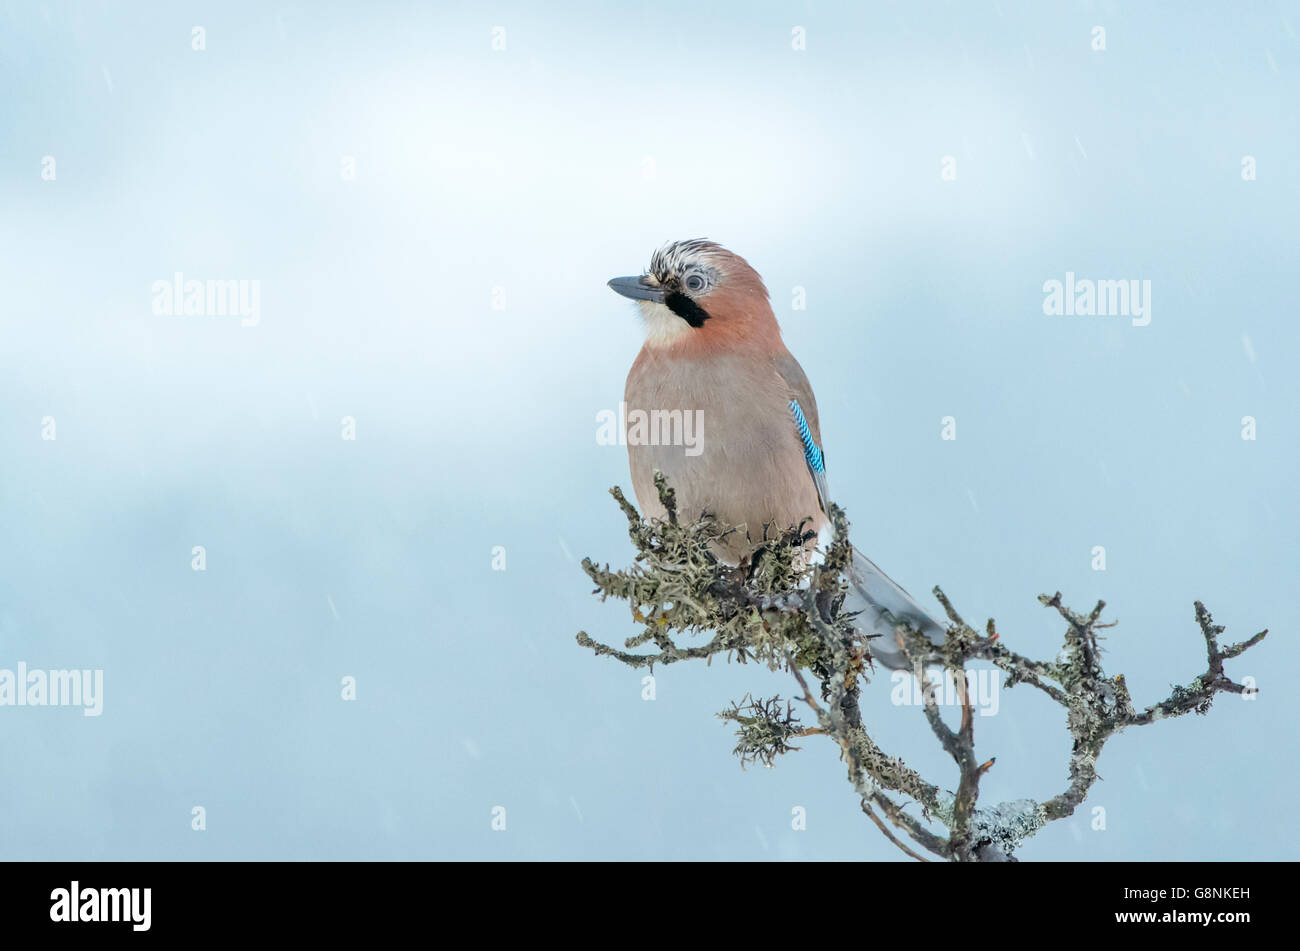 Jay (Garrulus glandarius) perched at a branch, Lauvsness, Flatanger, Norway. - Stock Image